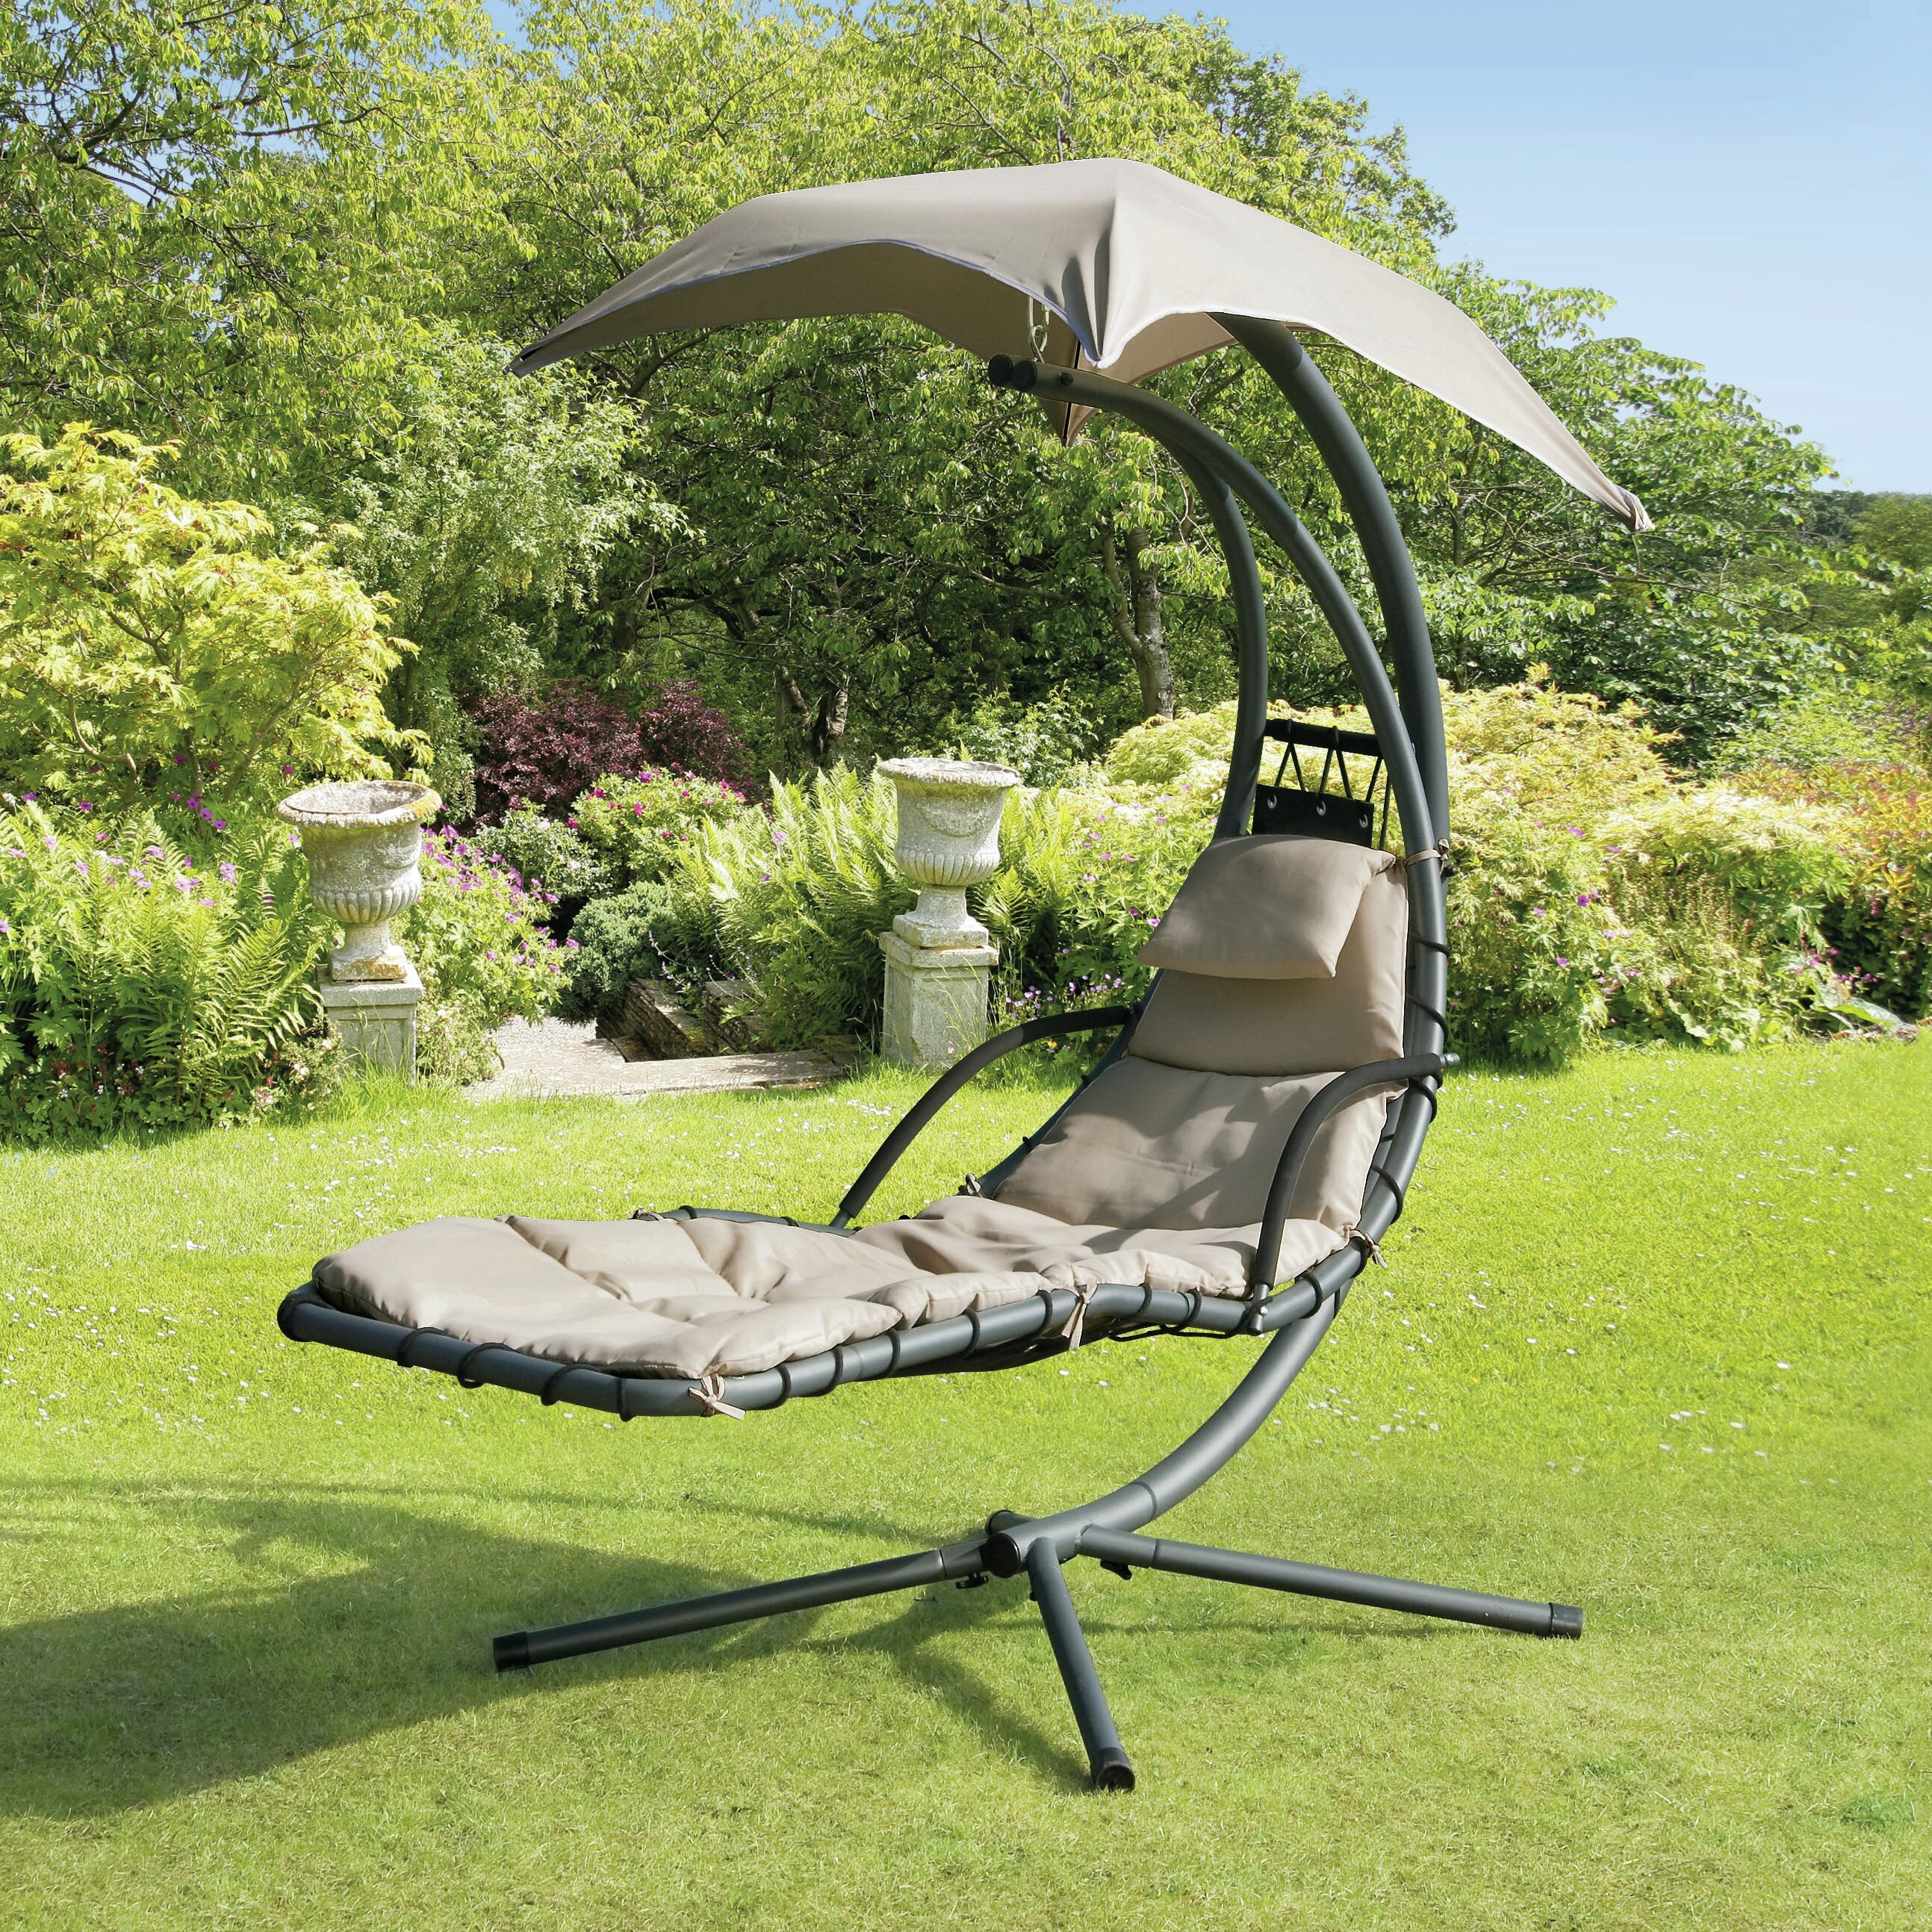 SunTime Outdoor Living Helicopter Swing Chair & Reviews ... on Suntime Outdoor Living id=52418